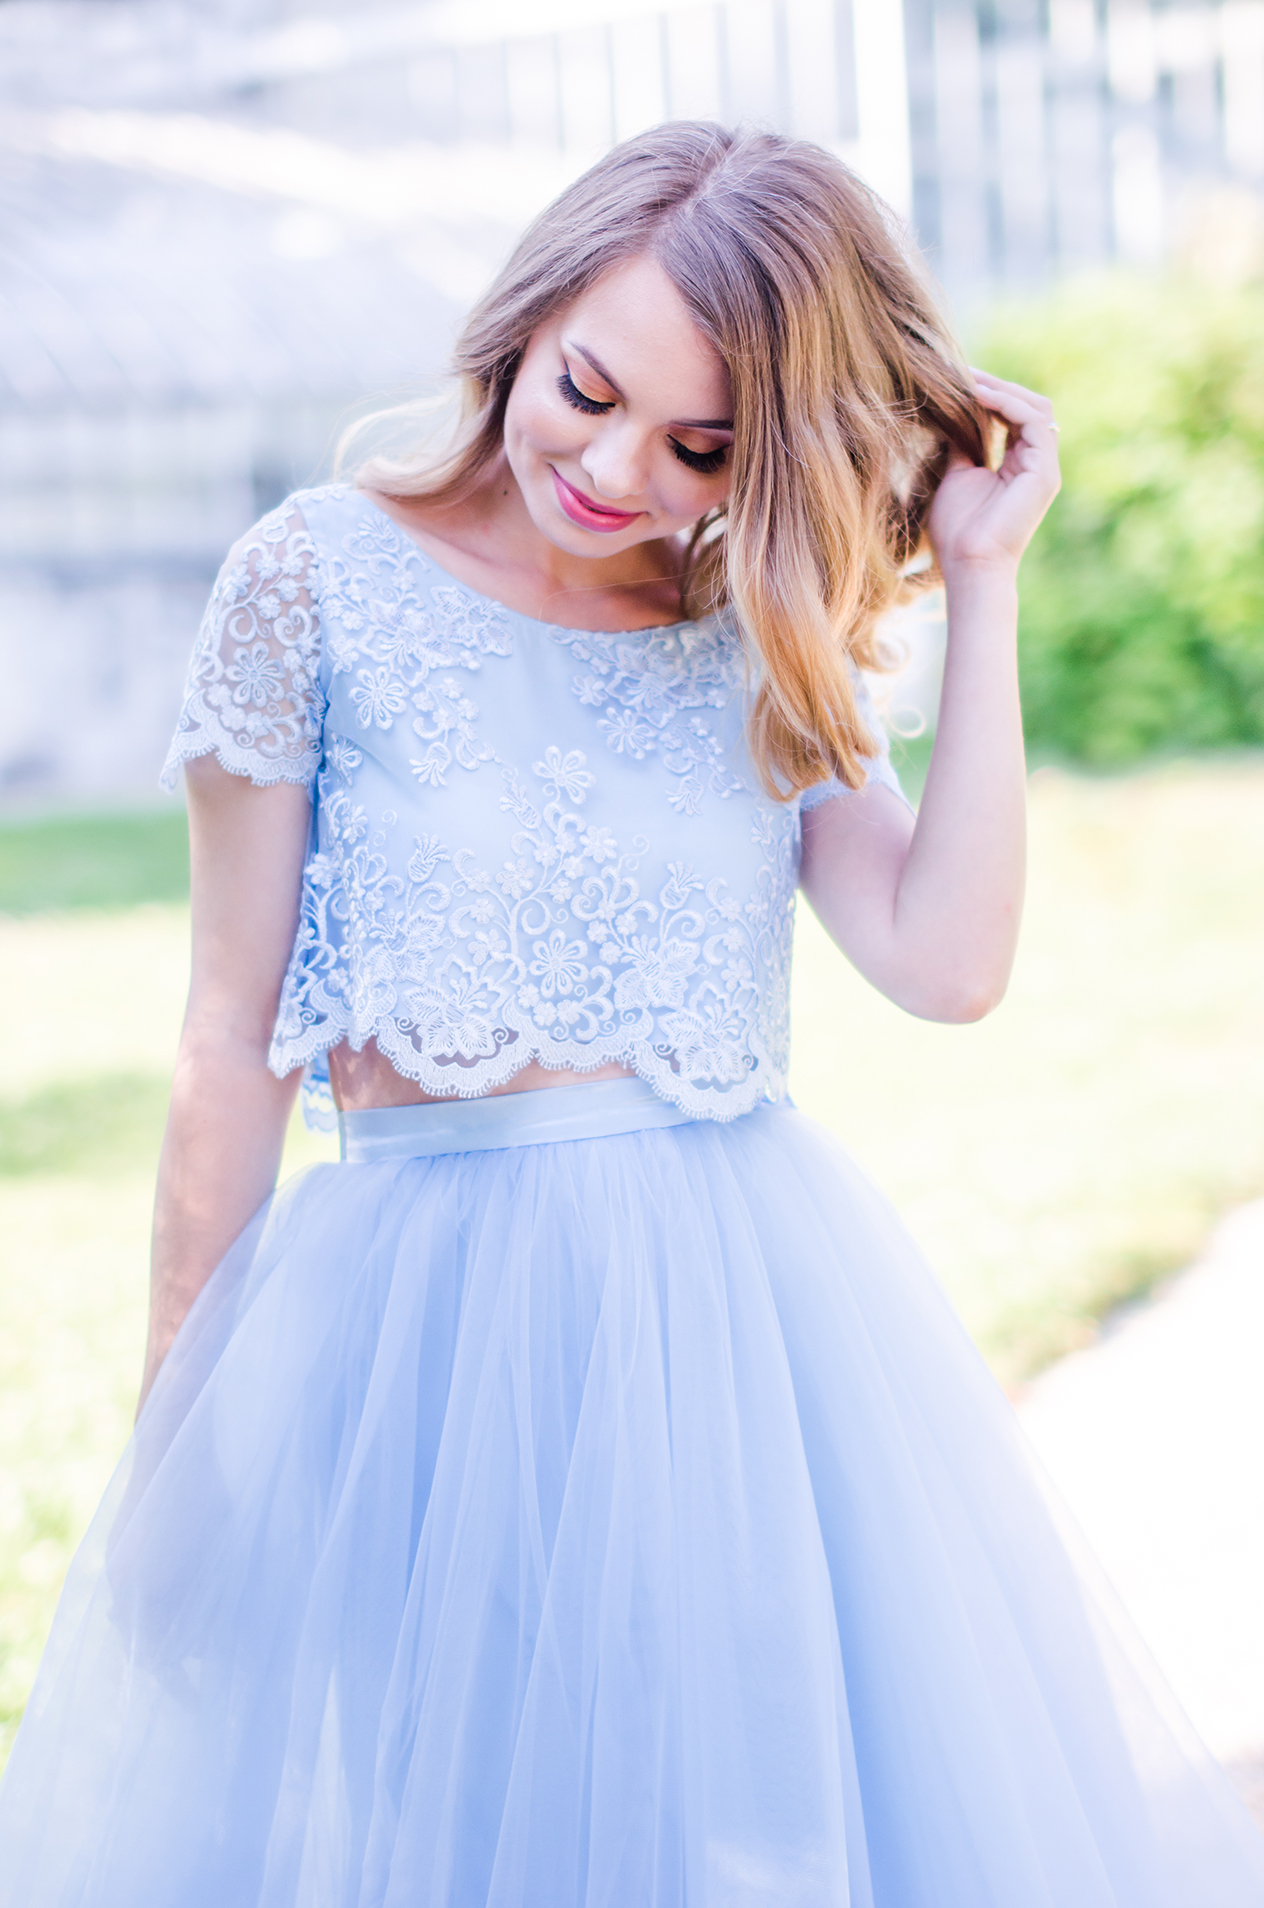 pink-wish-collection-blue-tulle-skirt-lace-top-wedding-princess-dress (15)